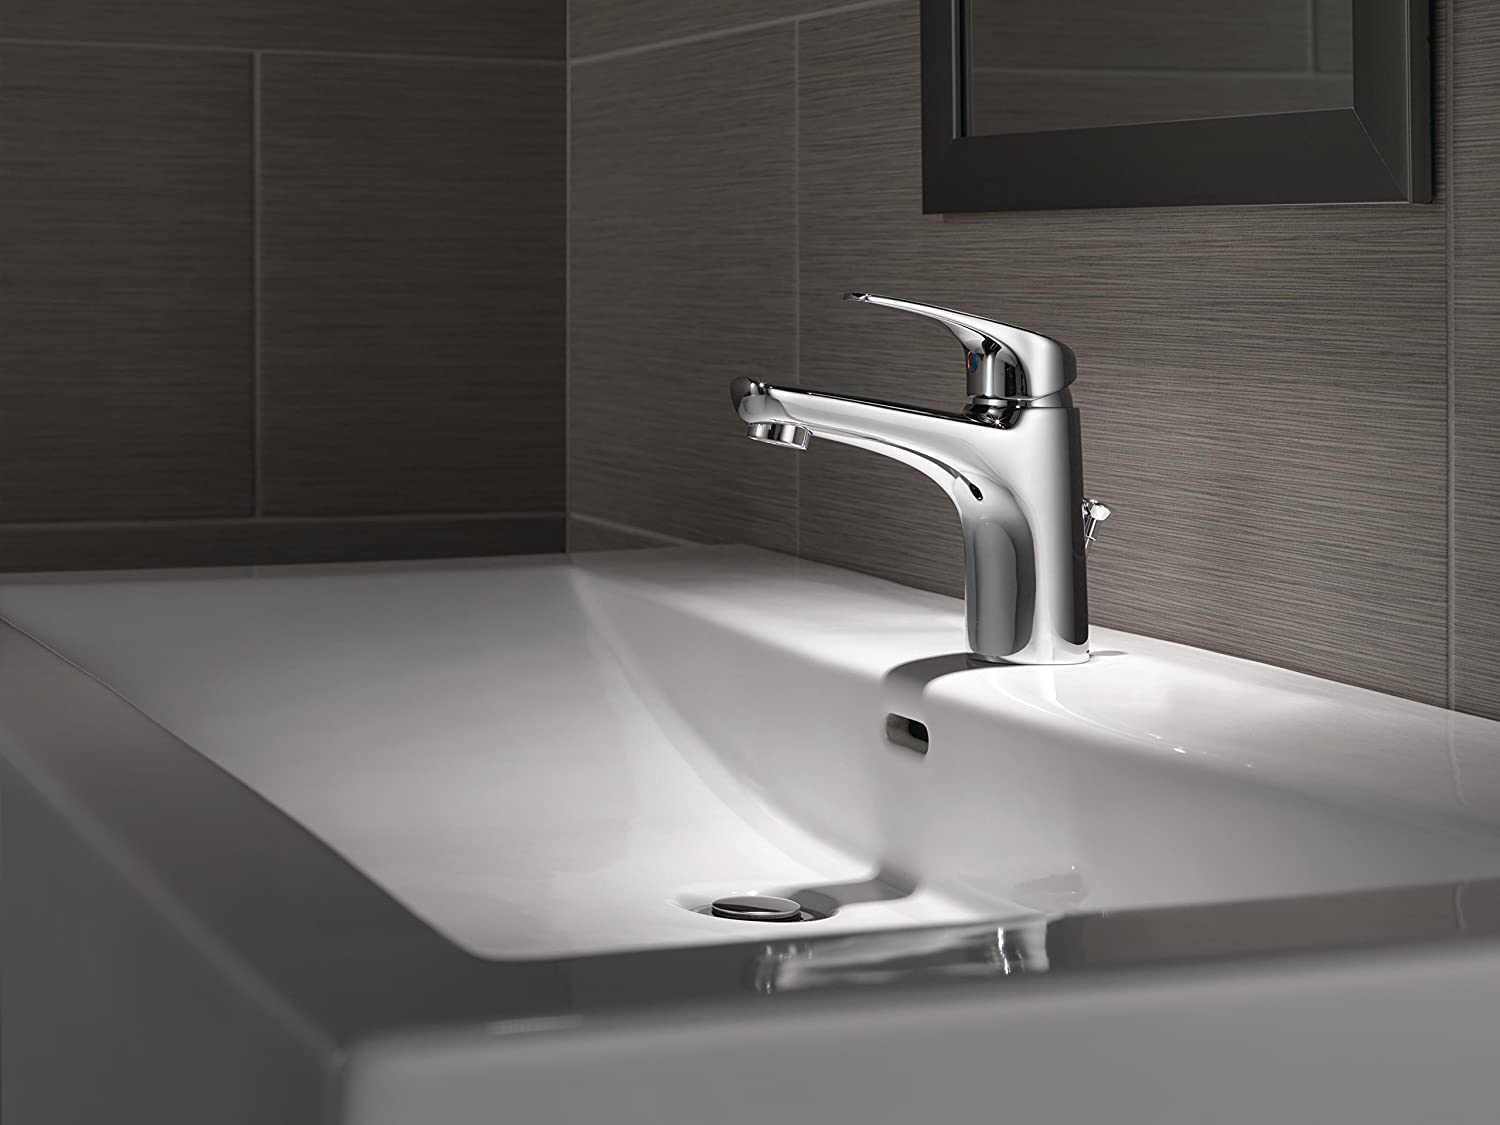 Amazon.com: Delta Faucet 534LF-PP Other Modern Single Handle ...